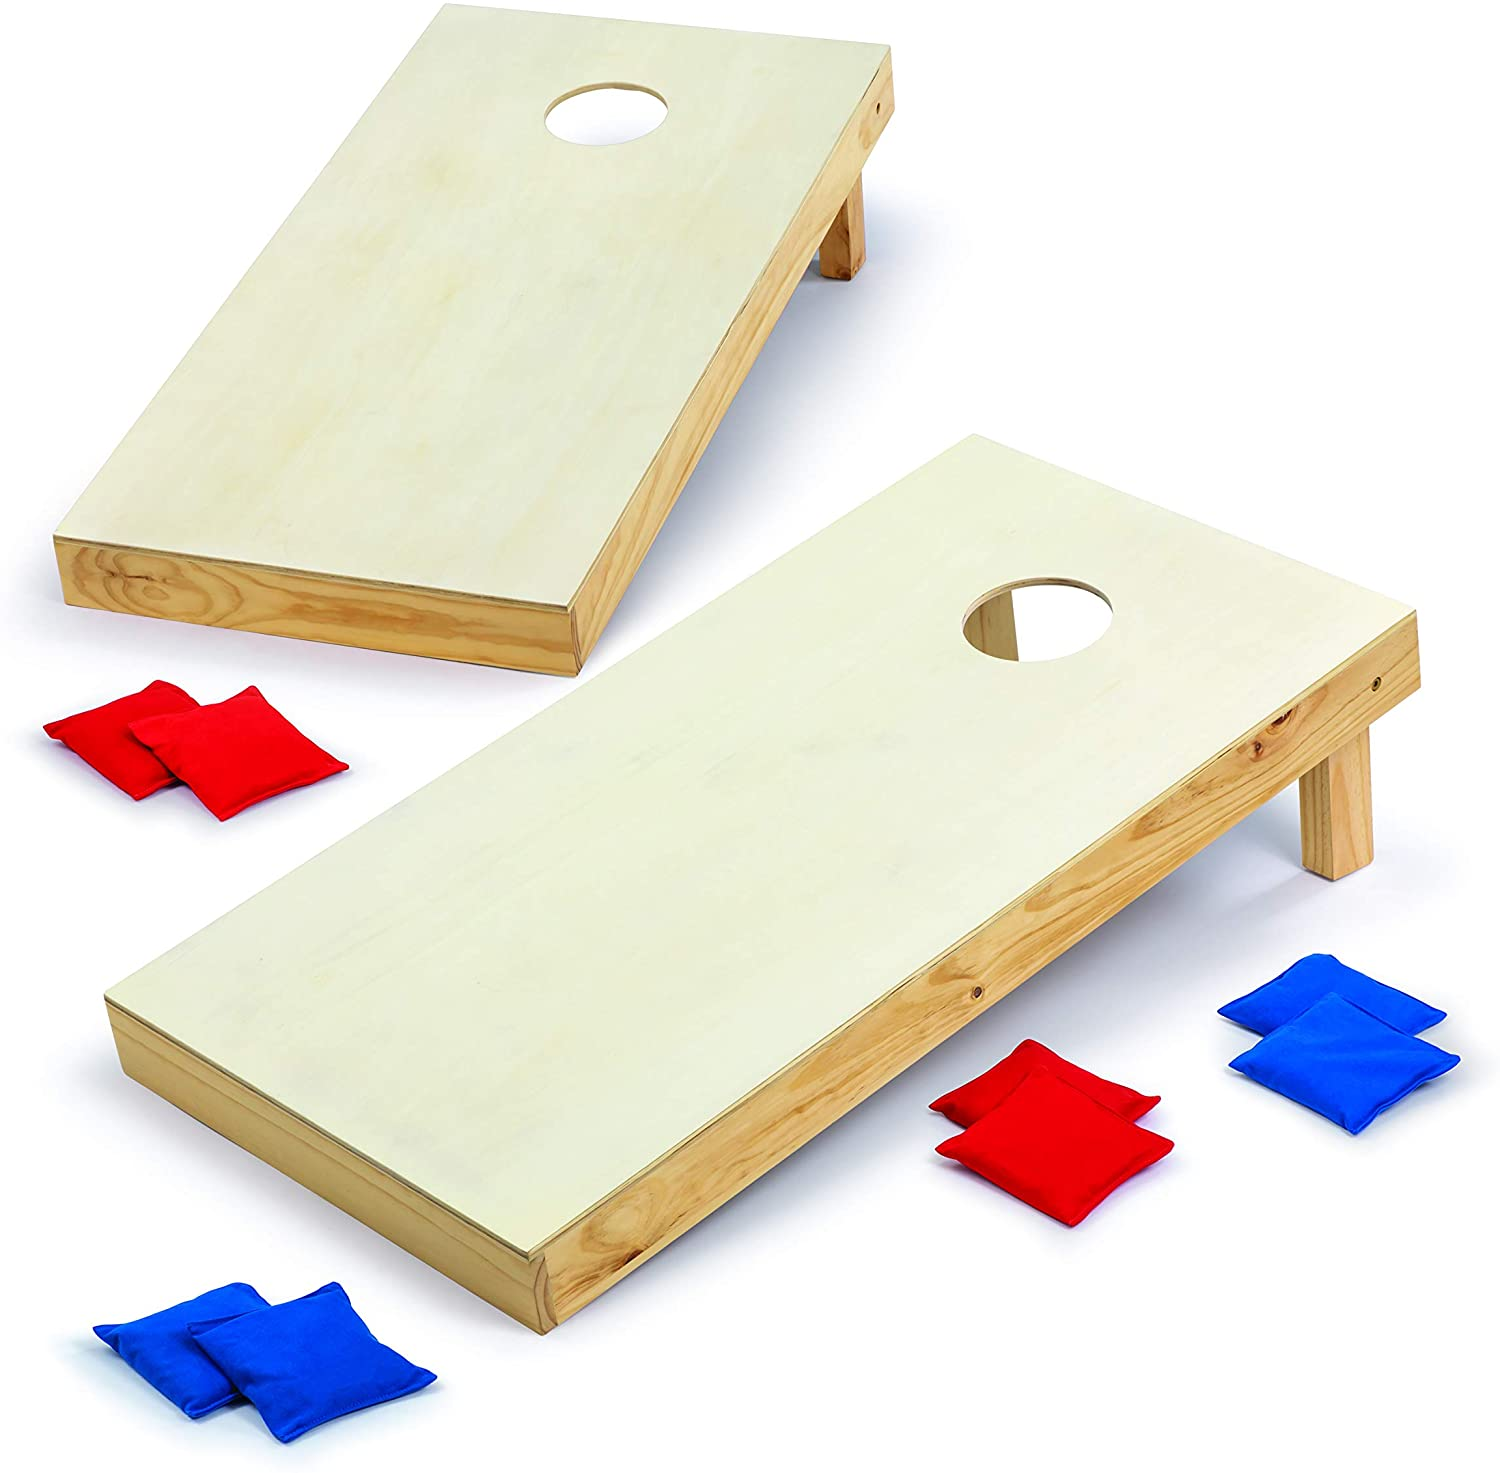 Backyard Champs Corn Game Boards